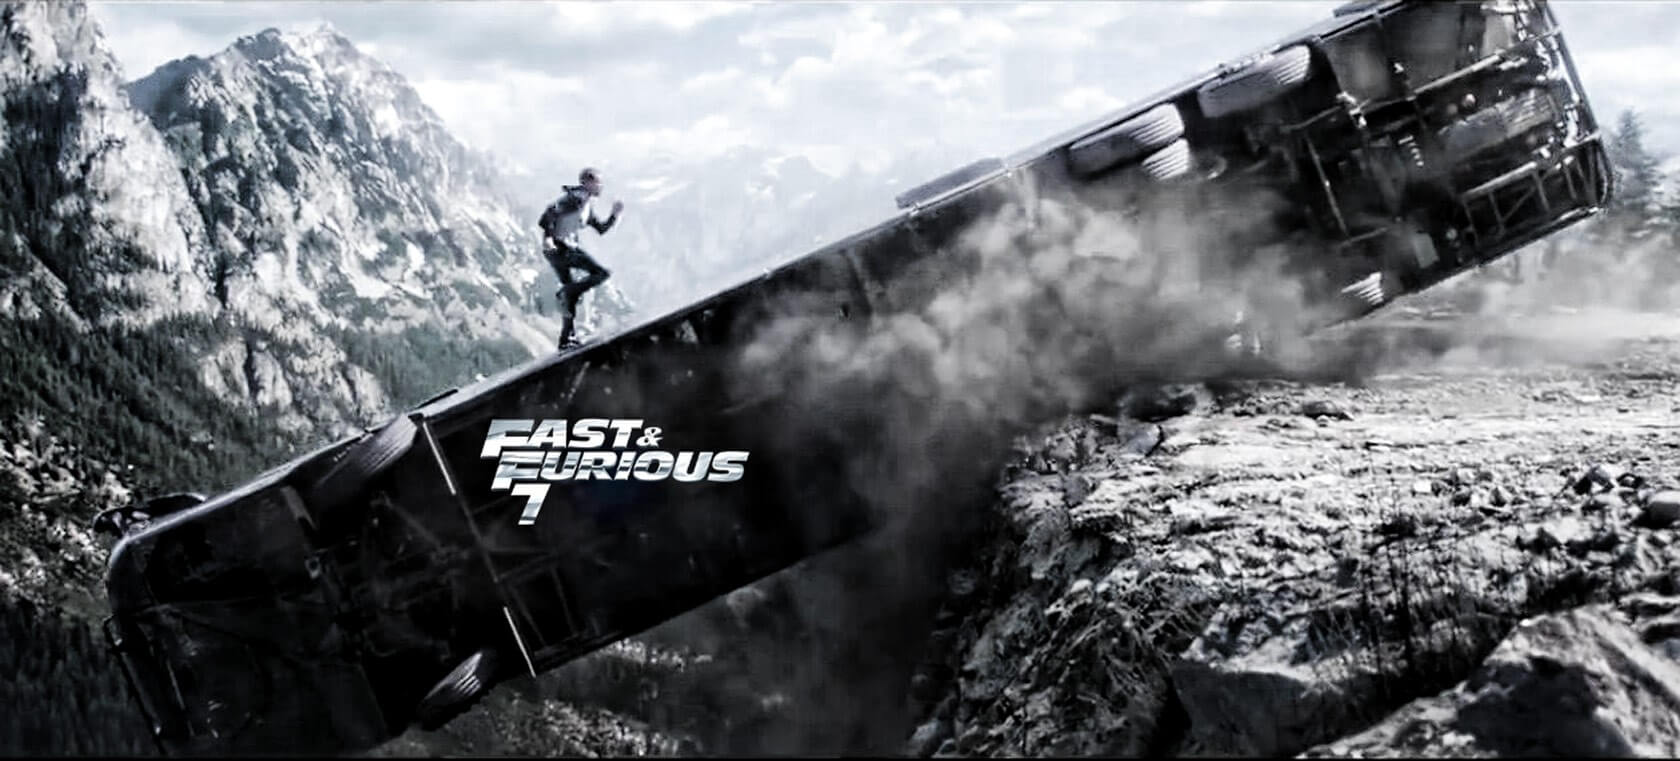 Fast and Furious 7 Opening Day Collection